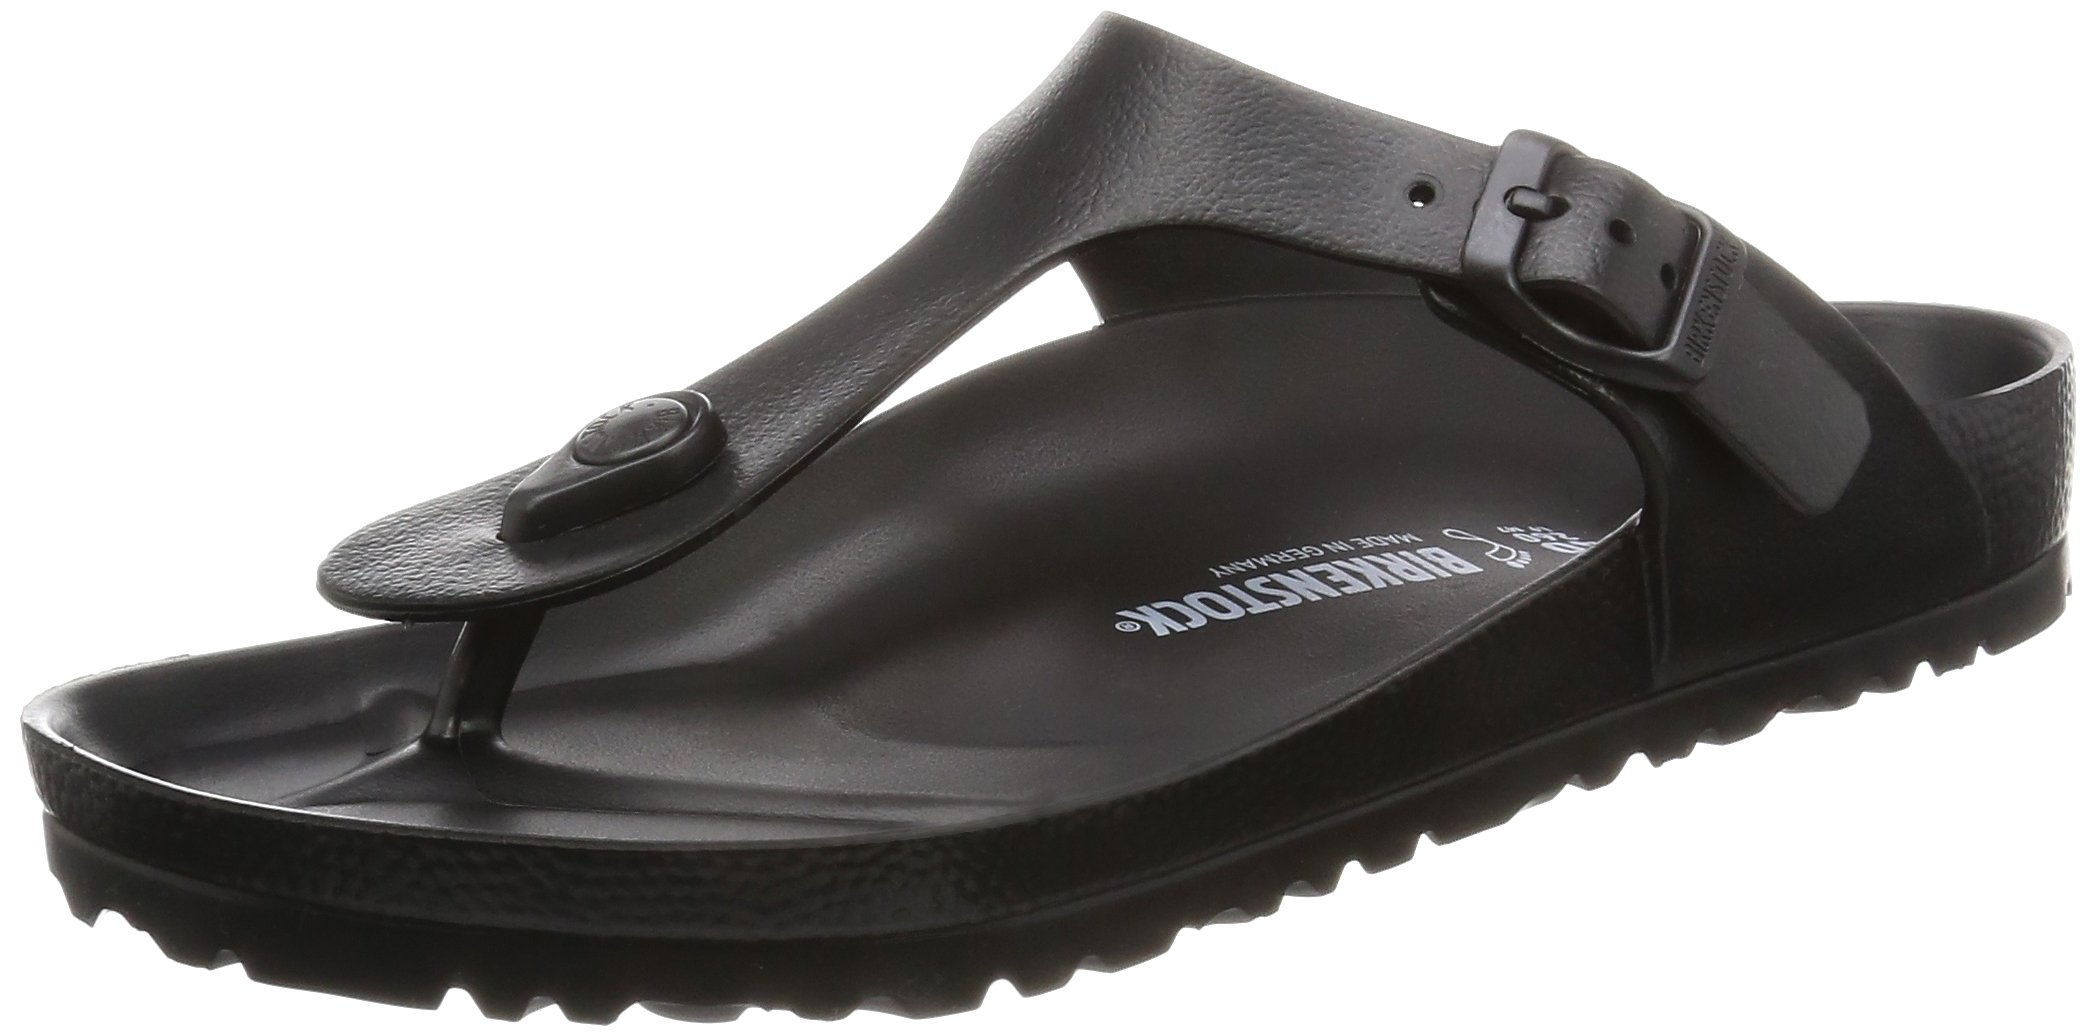 Birkenstock Women's Gizeh Black EVA Sandals 41 (US Women's 10-10.5) by Birkenstock